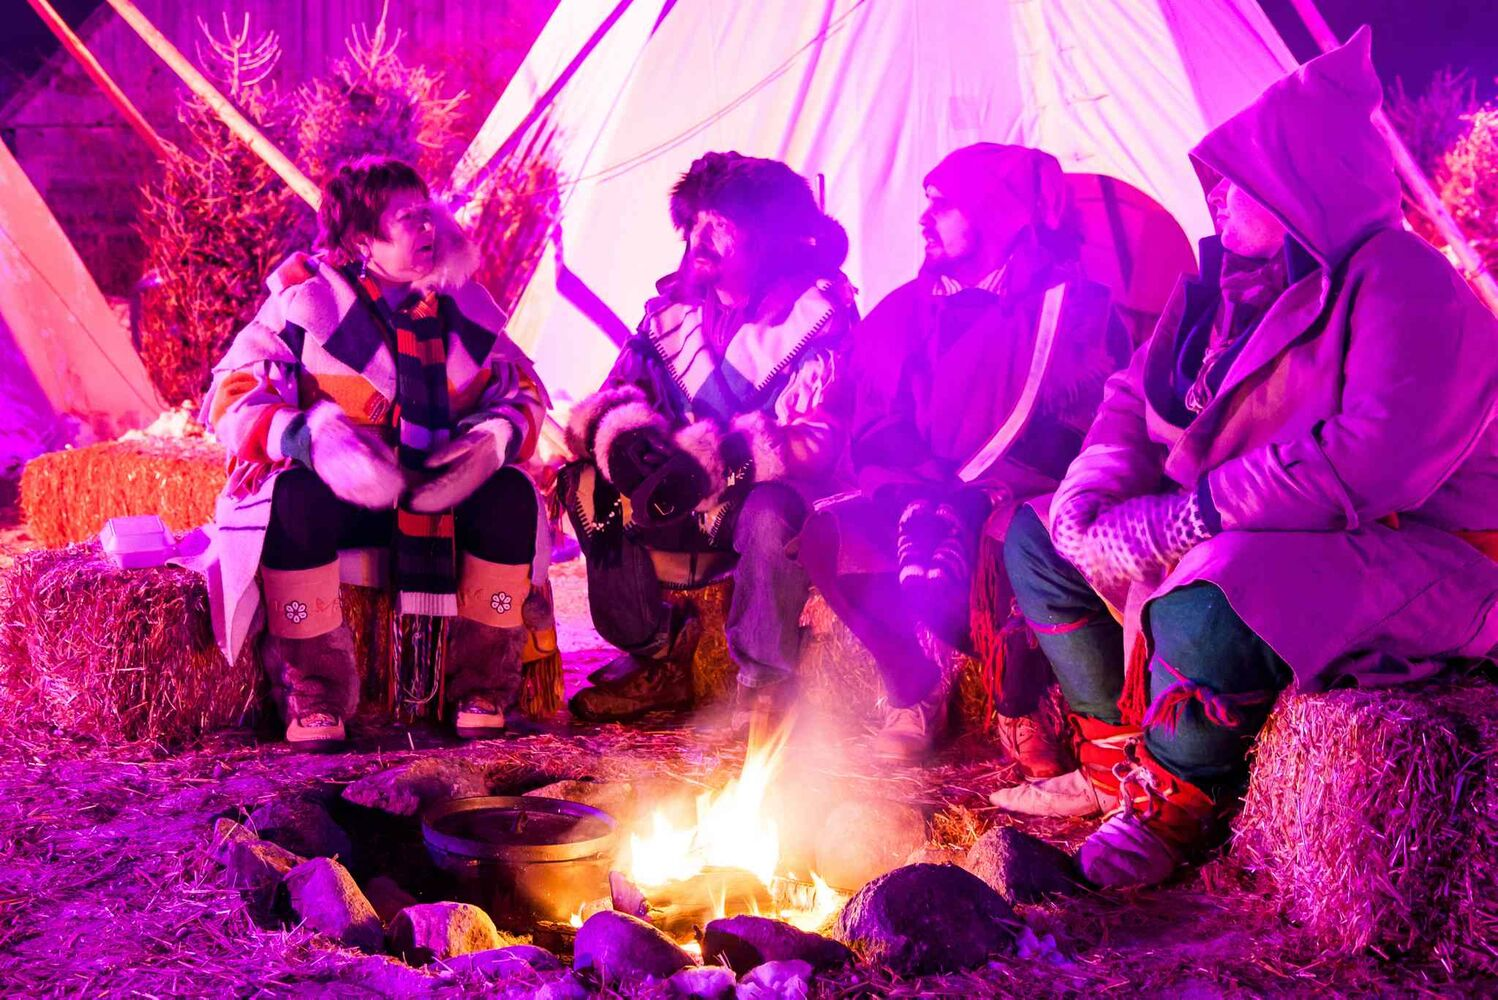 Opening night at the Festival du Voyageur  - Nancy Gouliquer, Tim Gouliquer, Toussaint Arcel, and Jeremy Kingsbury, share stories of past Festivals around the fire. 